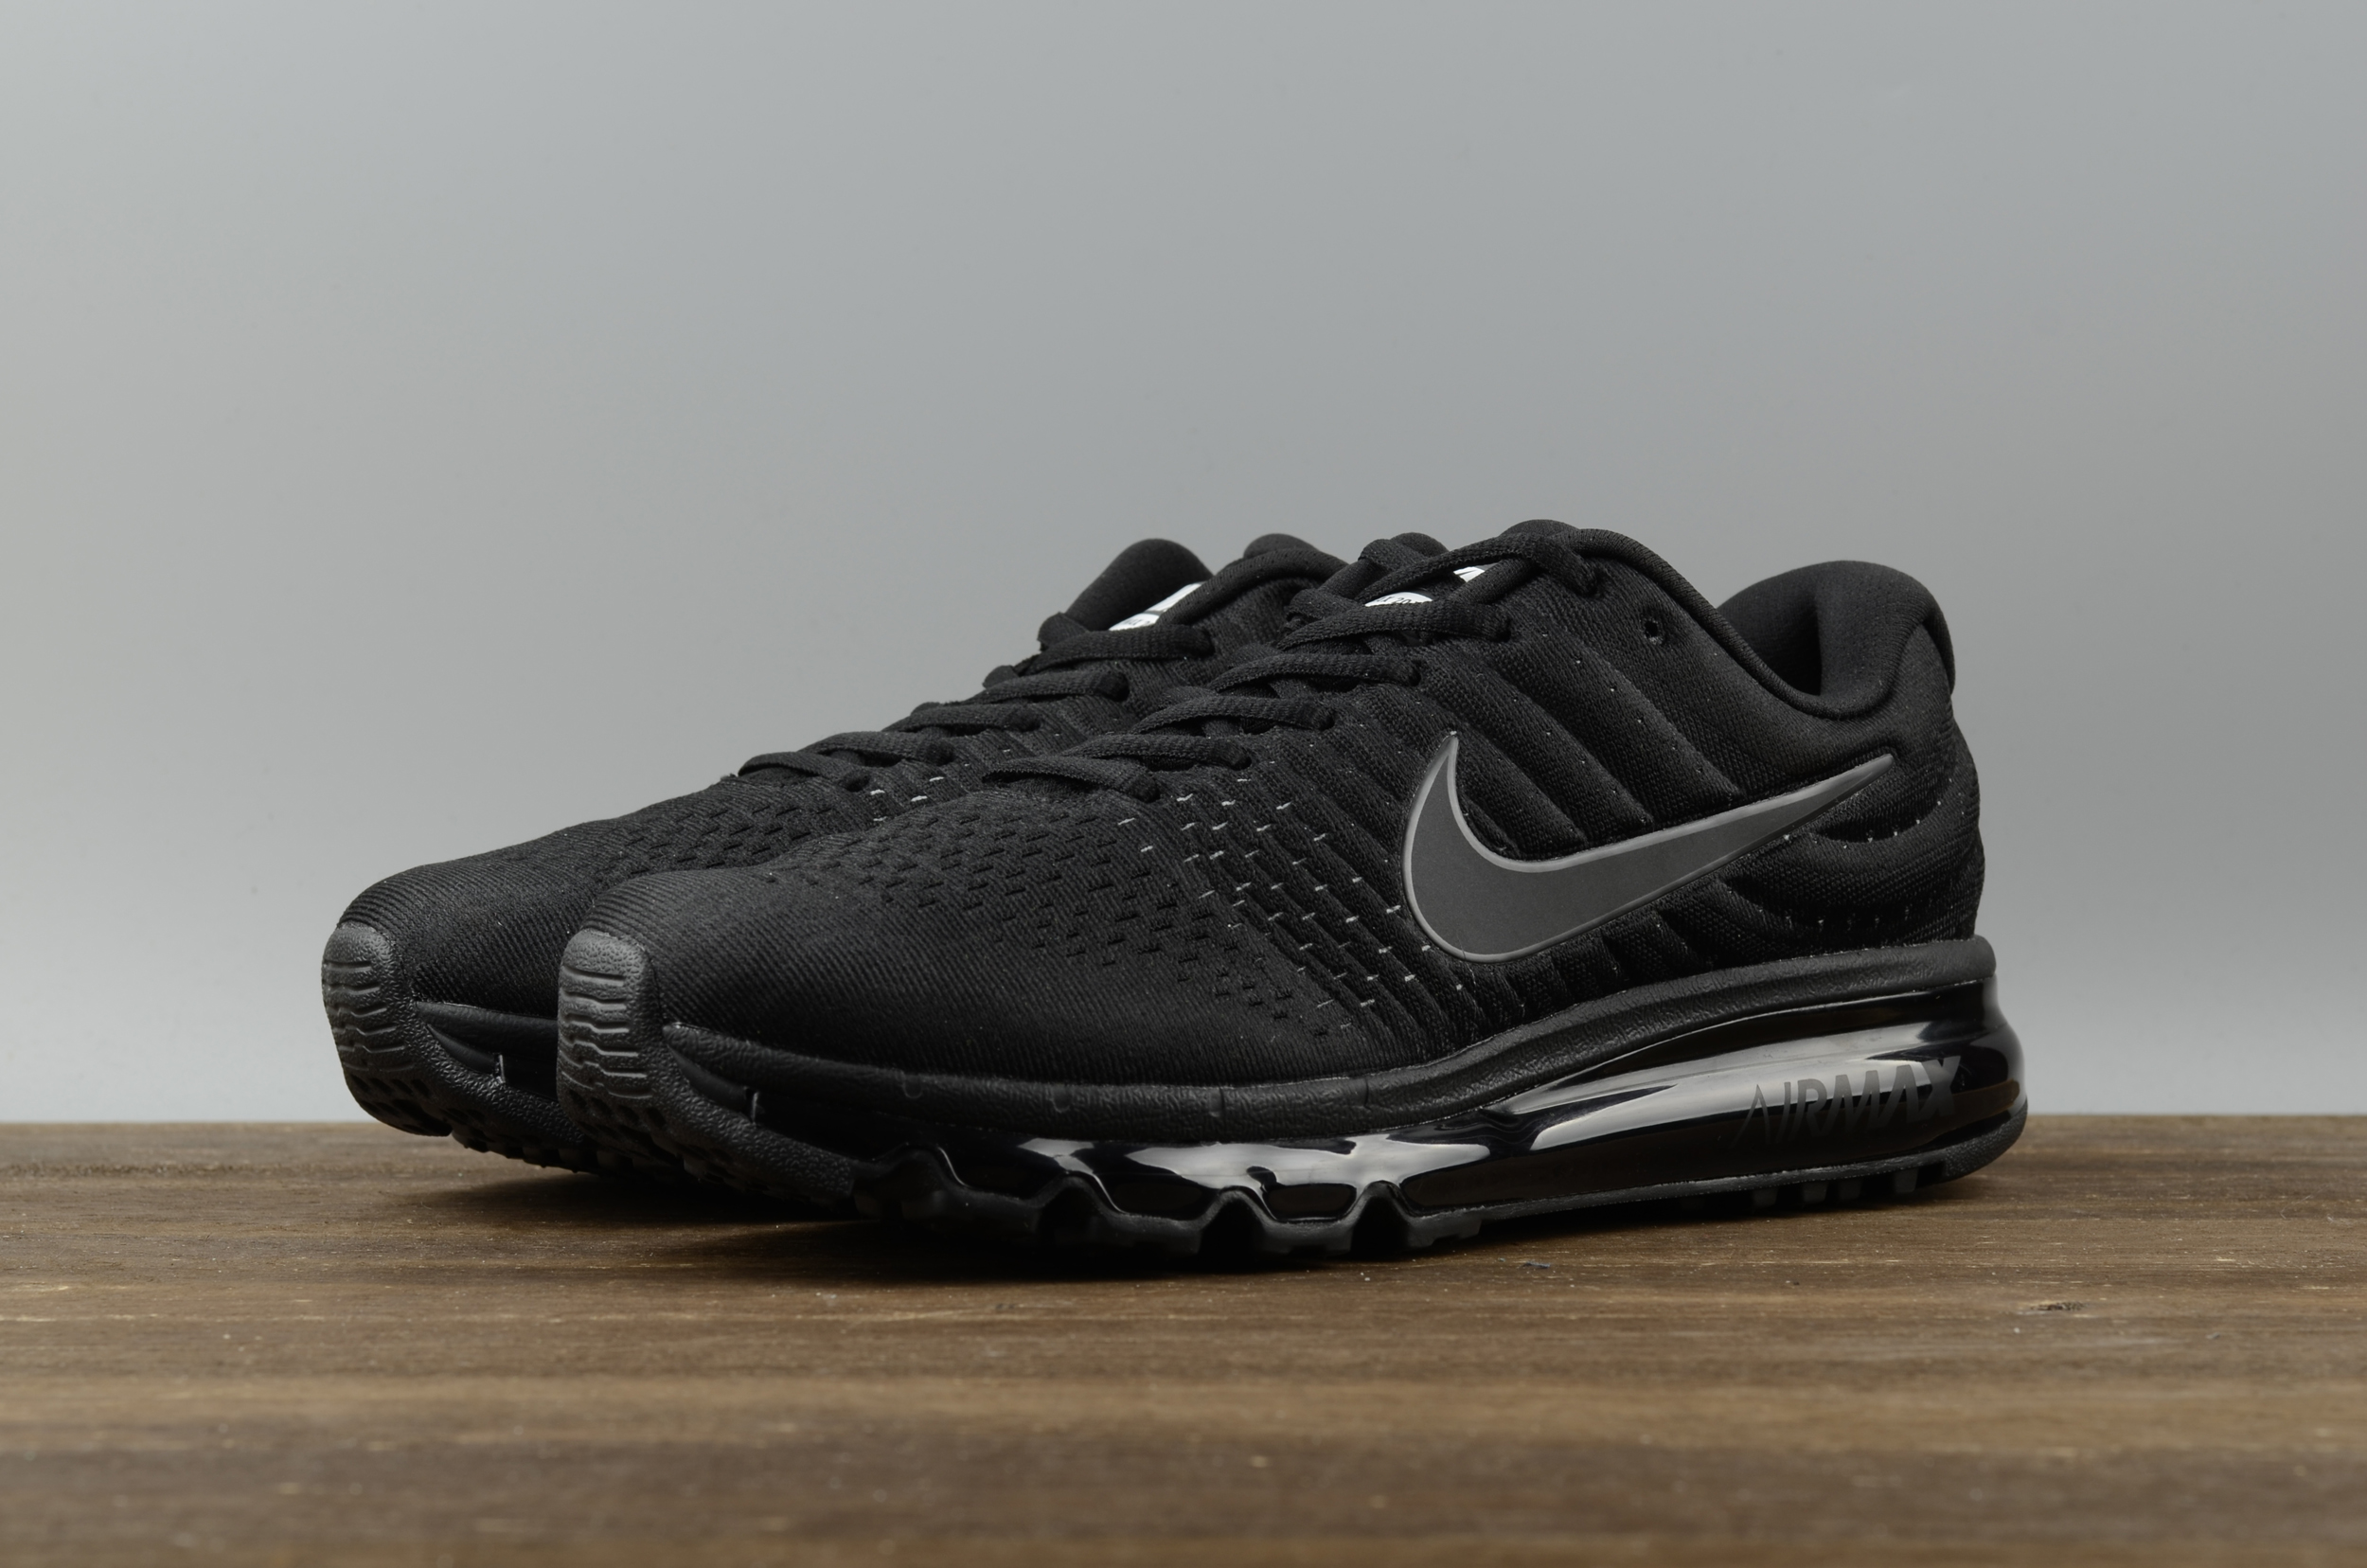 acheter populaire 5334b fce67 france nike air max 2017 malaysia 19b1c af9a6